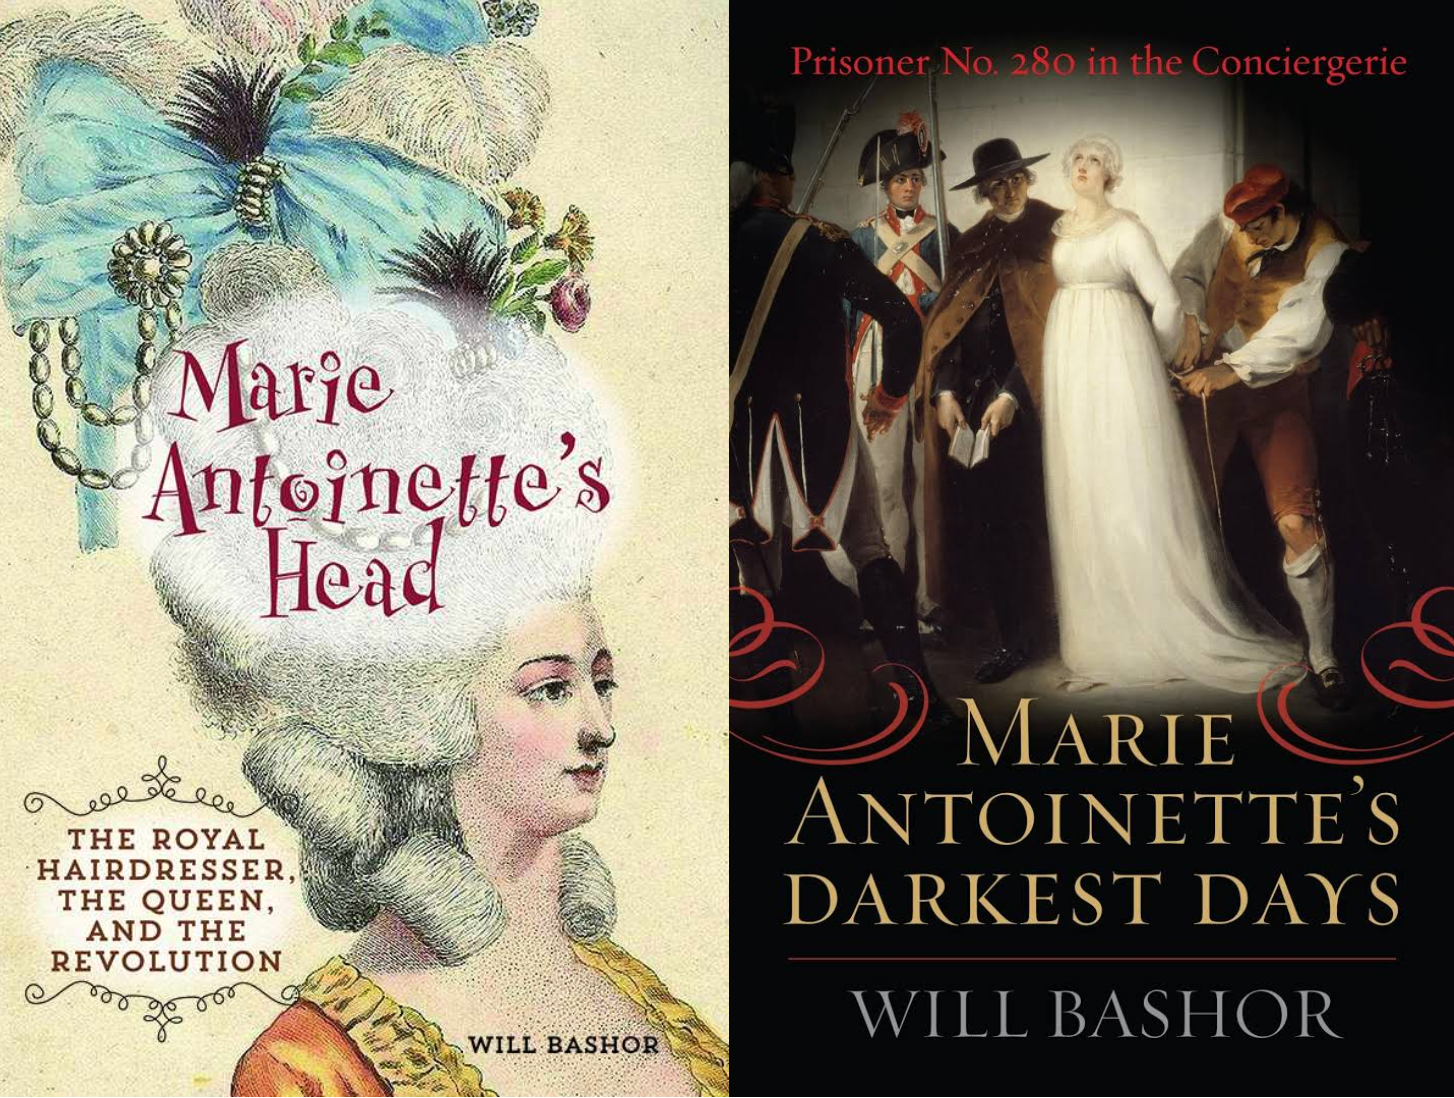 Book covers of Marie Antoinette's Head, and Marie Antoinette's Darkest Days by Will Bashor.